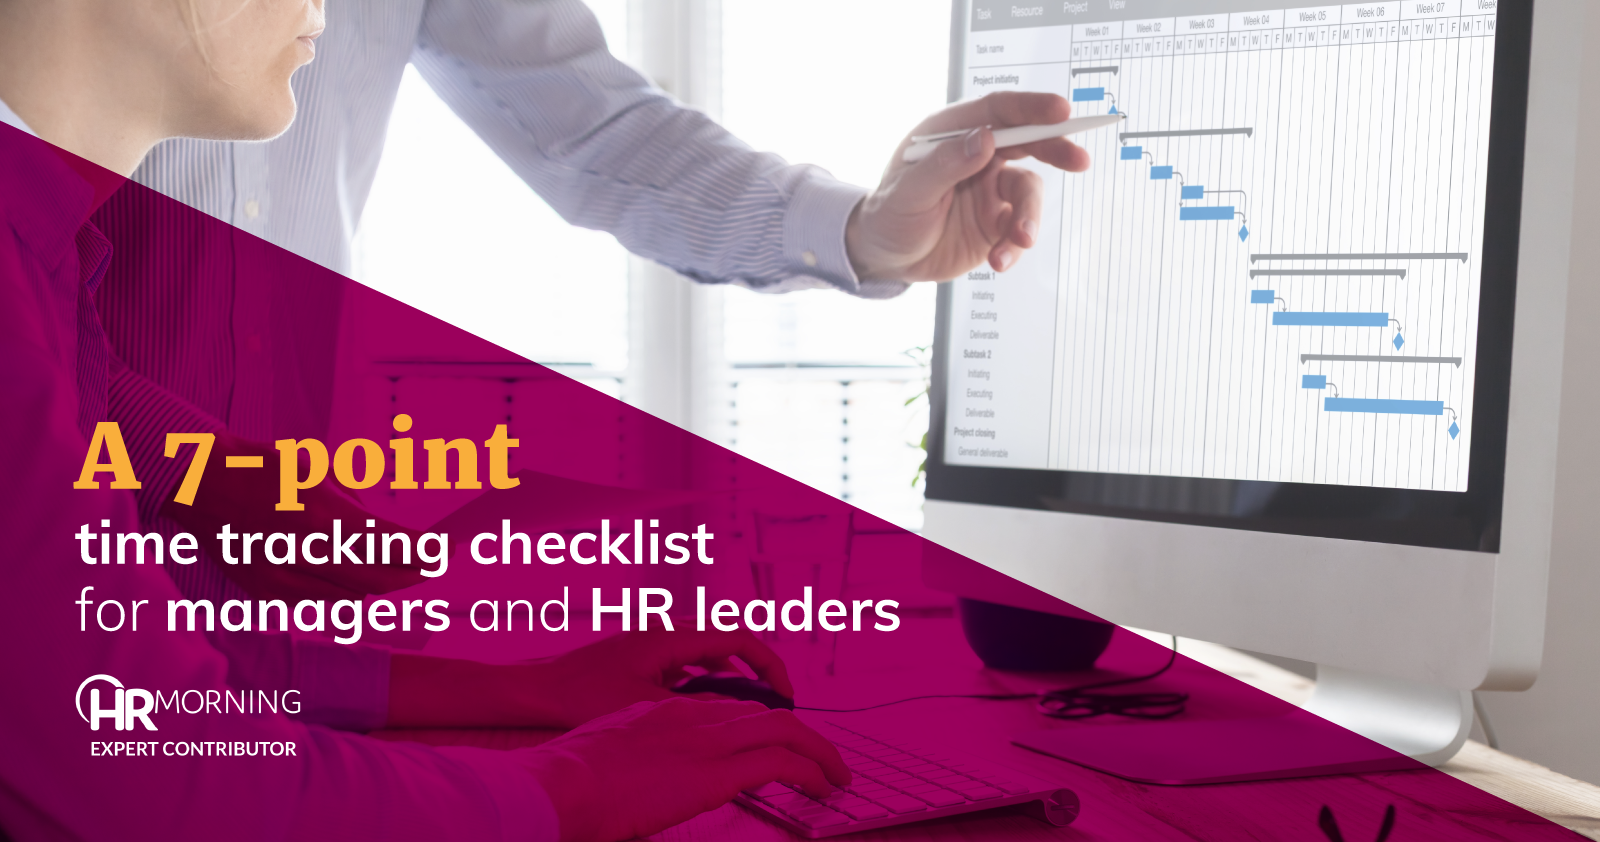 7-point time tracking checklist